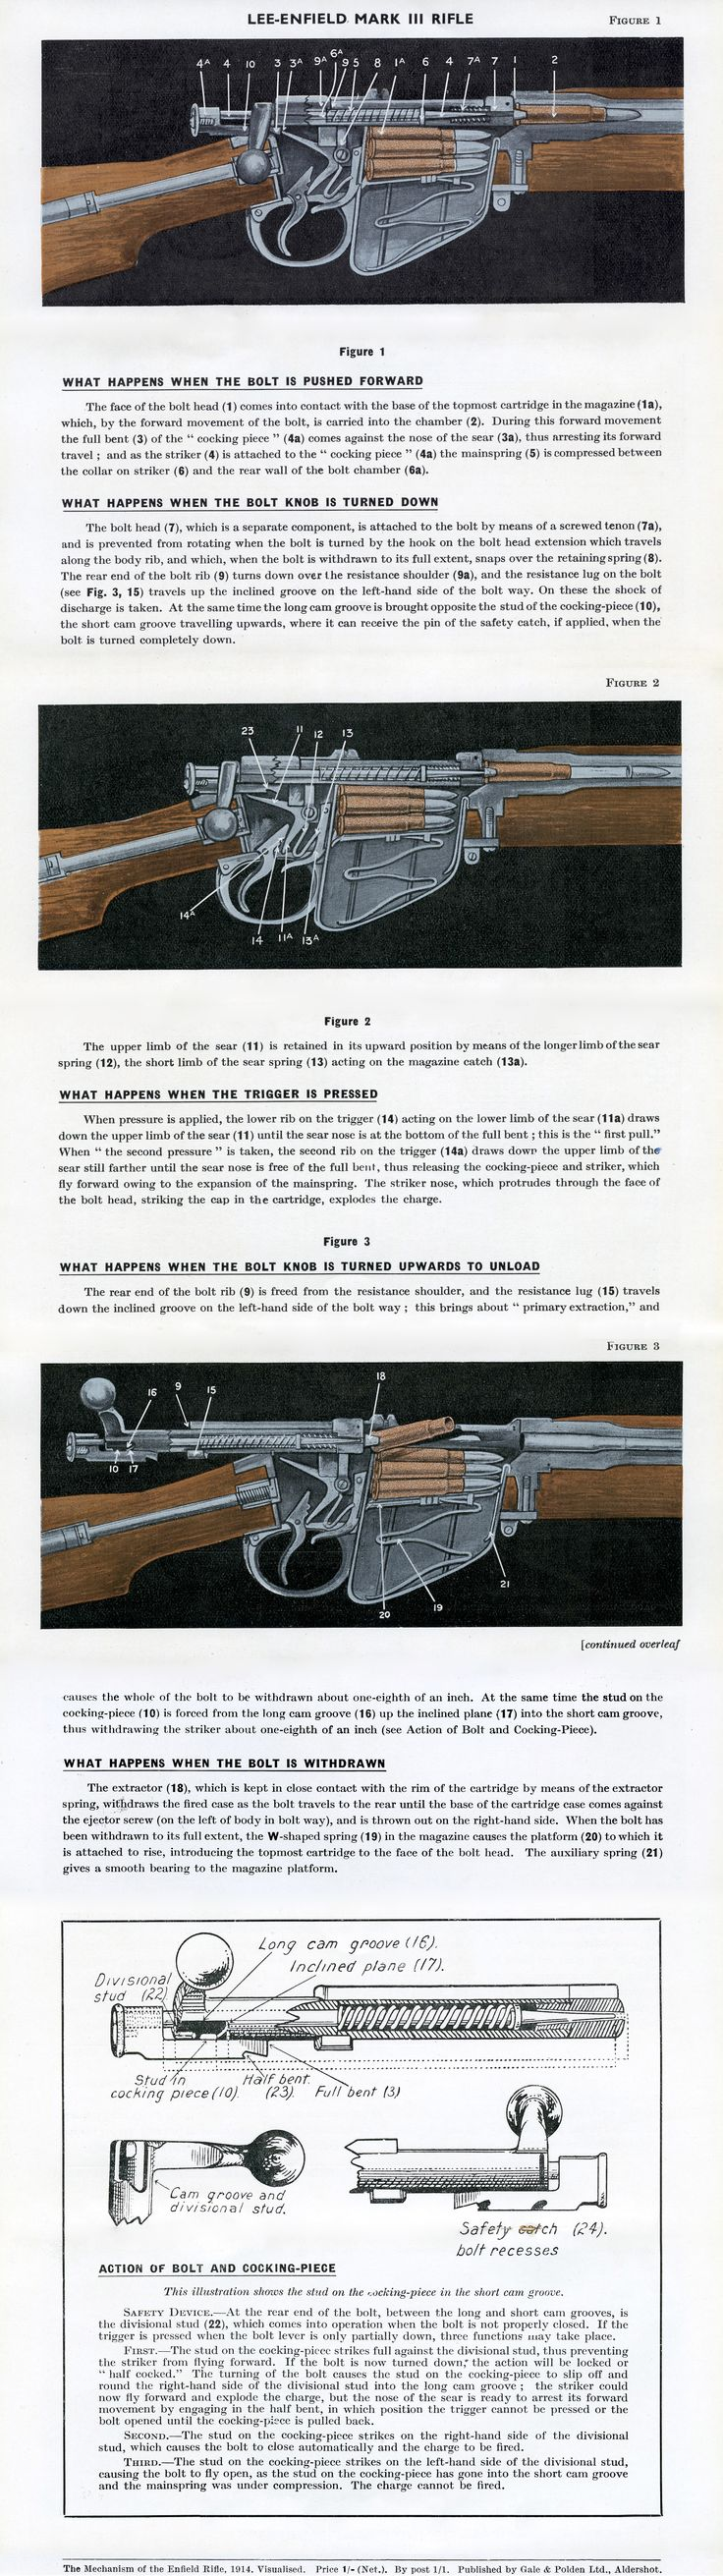 Fold out section of Gale & Polden leaflet from WWII, 'The Mechanism of the Short Rifle Magazine Lee-Enfield Mark III.  Explains the SMLE Mk III* action in great detail, with colour sectional diagrams